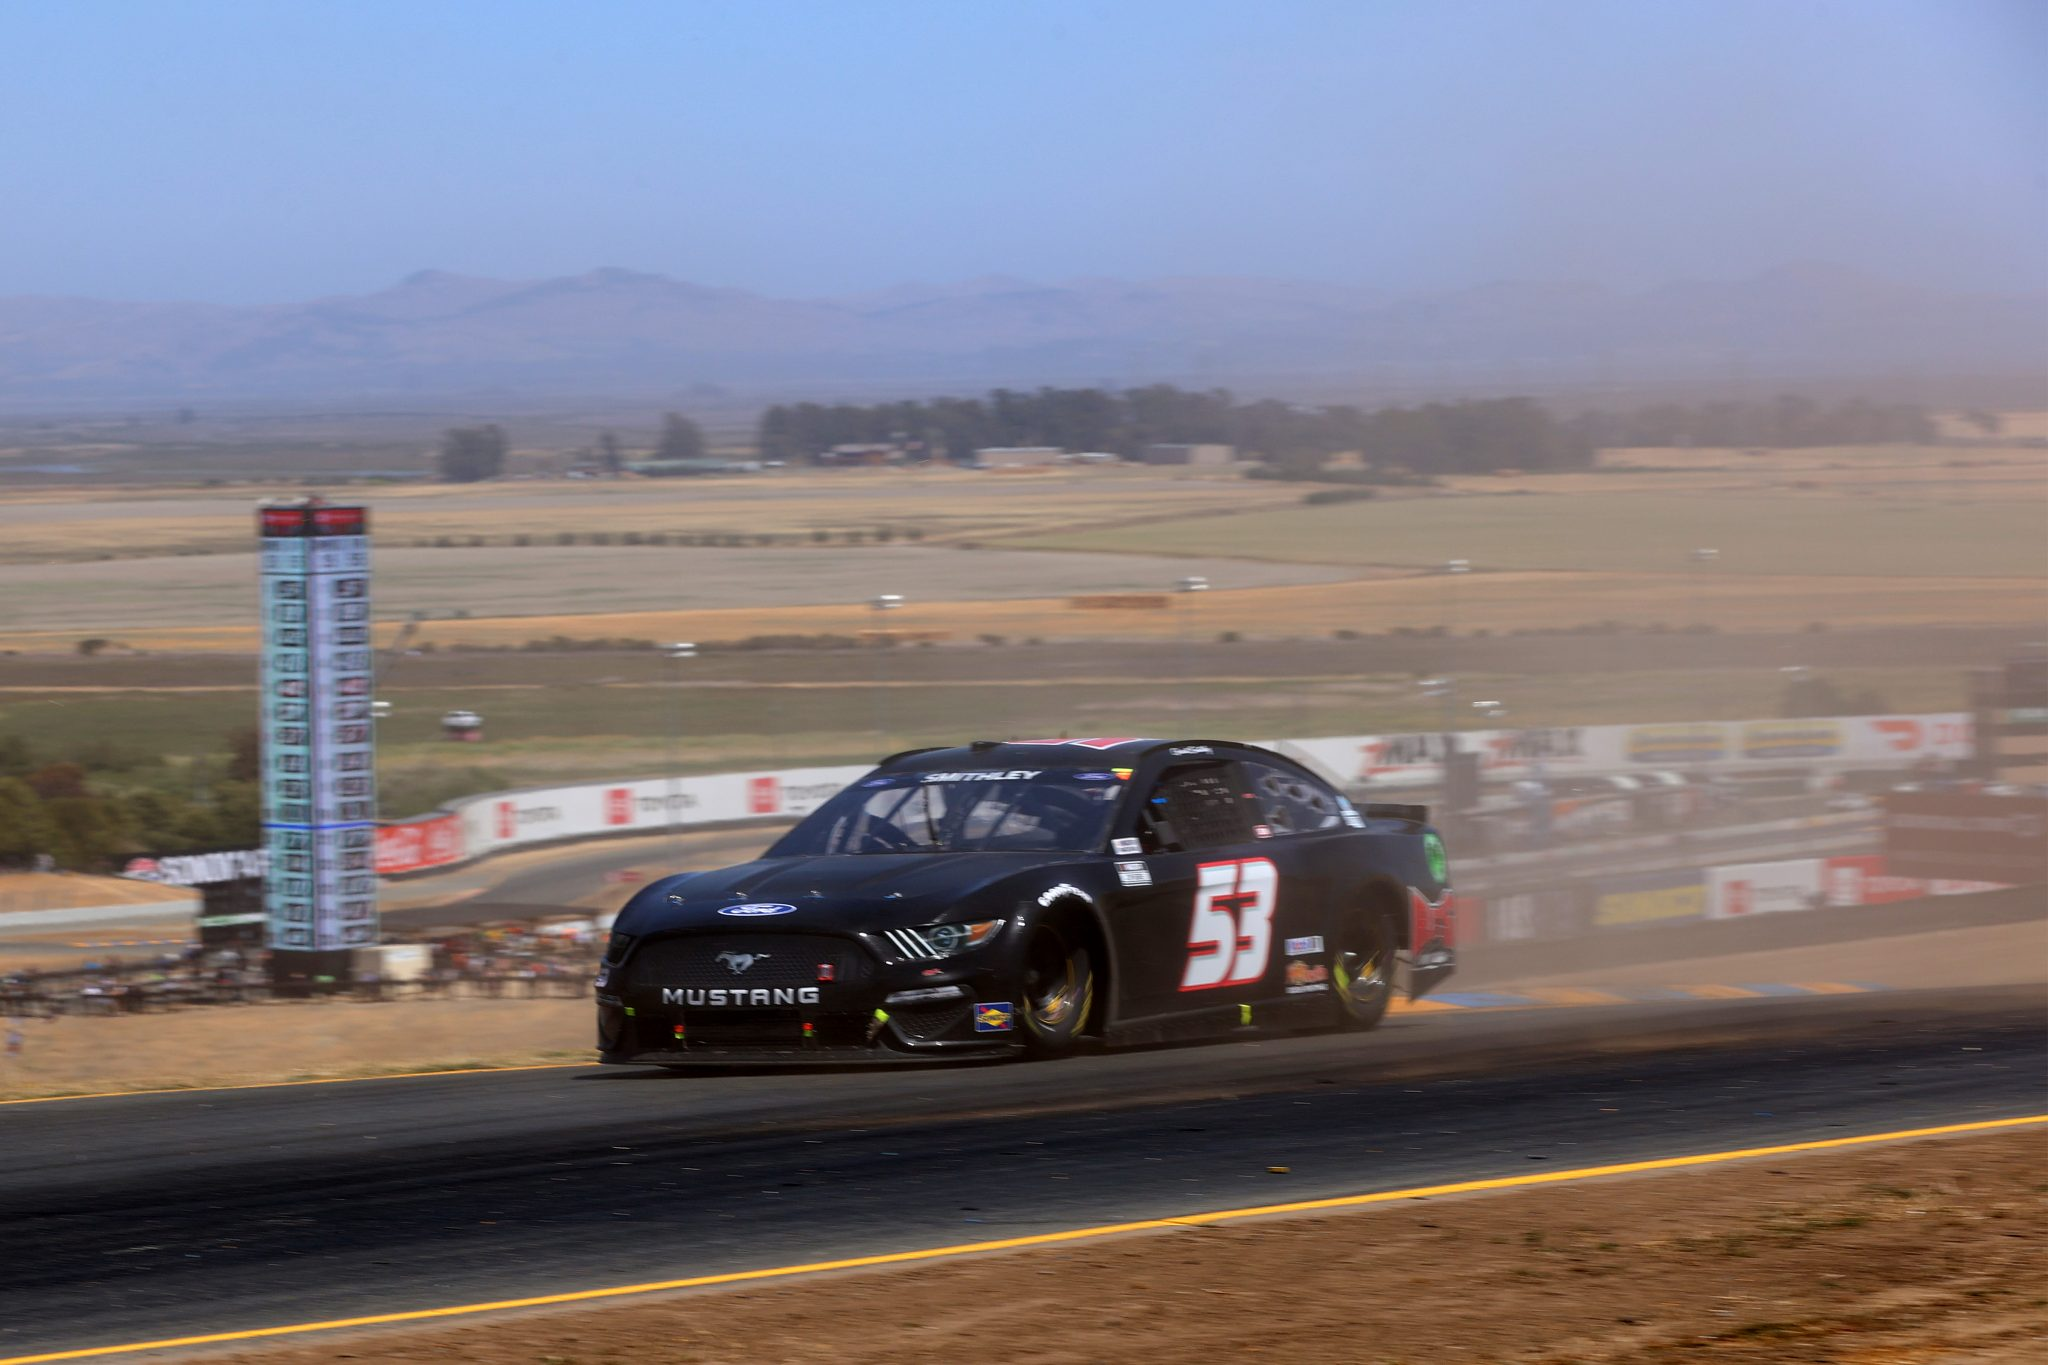 SONOMA, CALIFORNIA - JUNE 06: Garrett Smithley, driver of the #53 RJ's Paint Shop Ford, drives during the NASCAR Cup Series Toyota/Save Mart 350 at Sonoma Raceway on June 06, 2021 in Sonoma, California. (Photo by Carmen Mandato/Getty Images) | Getty Images